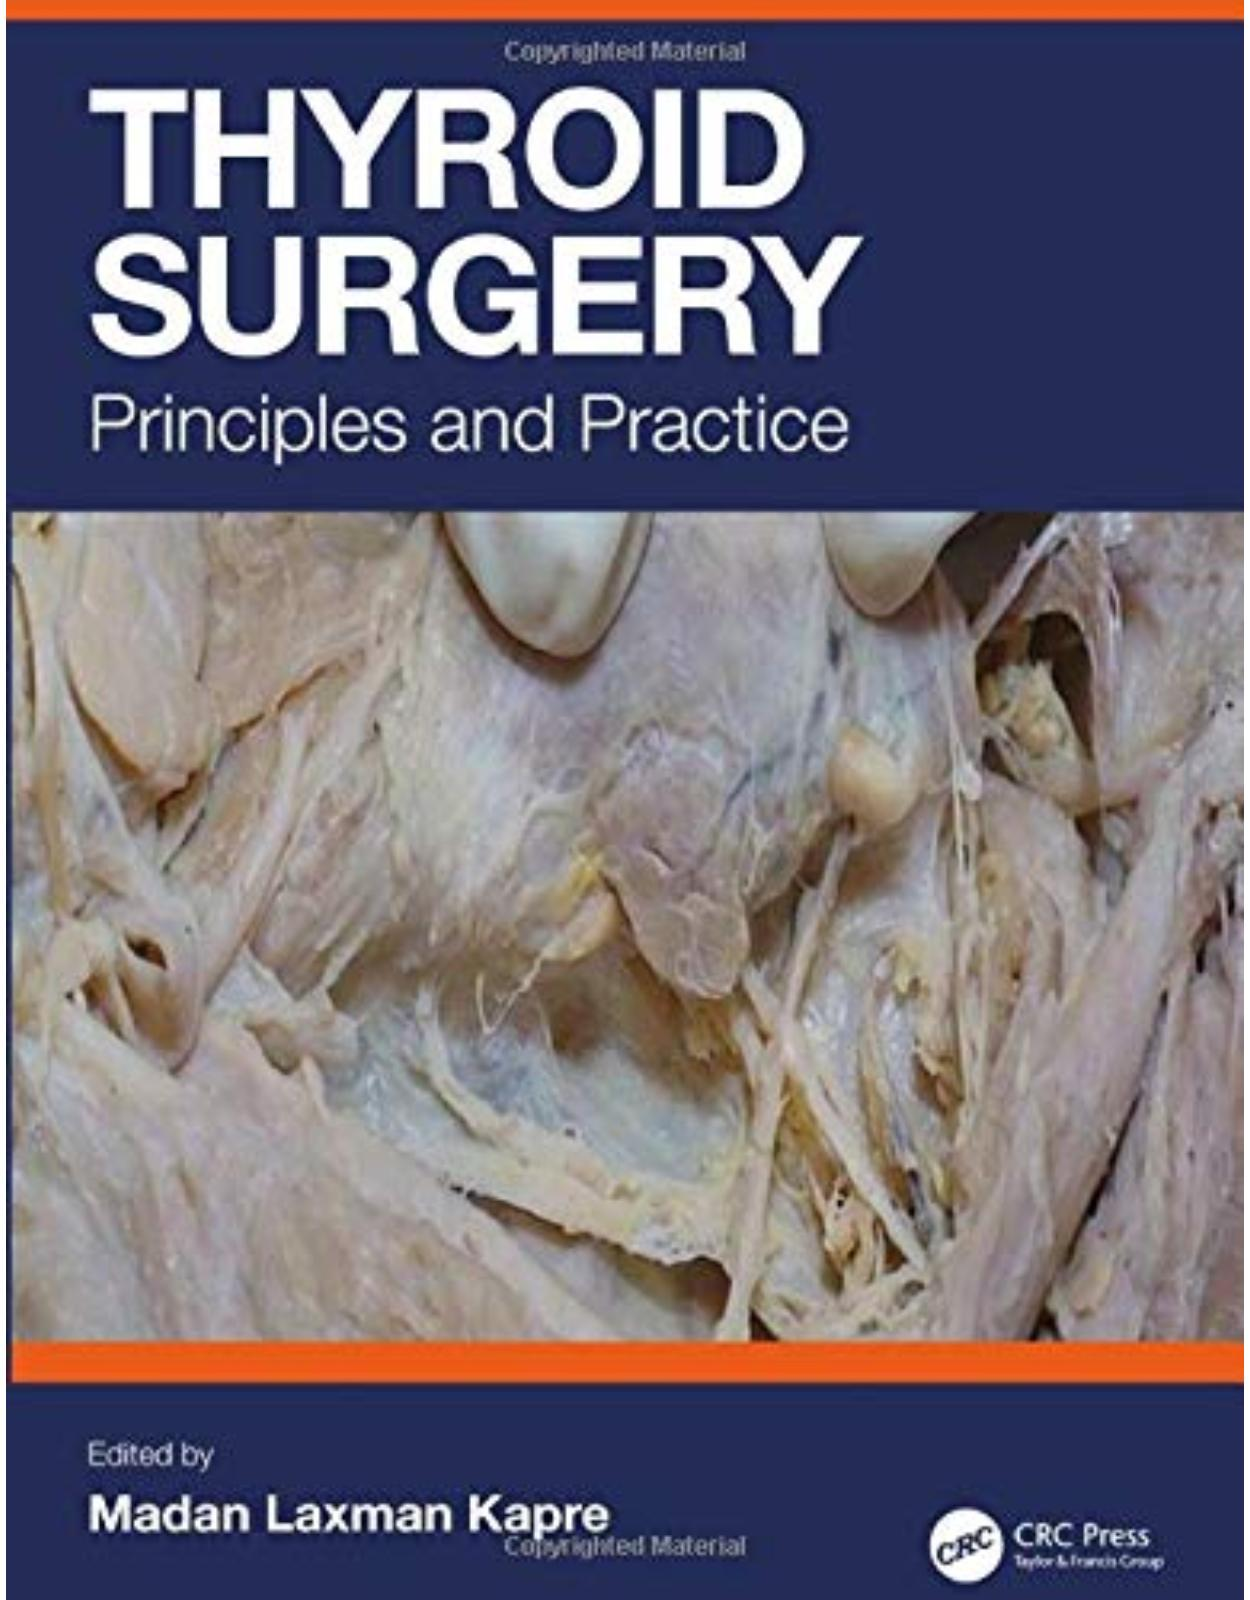 Thyroid Surgery: Principles and Practice